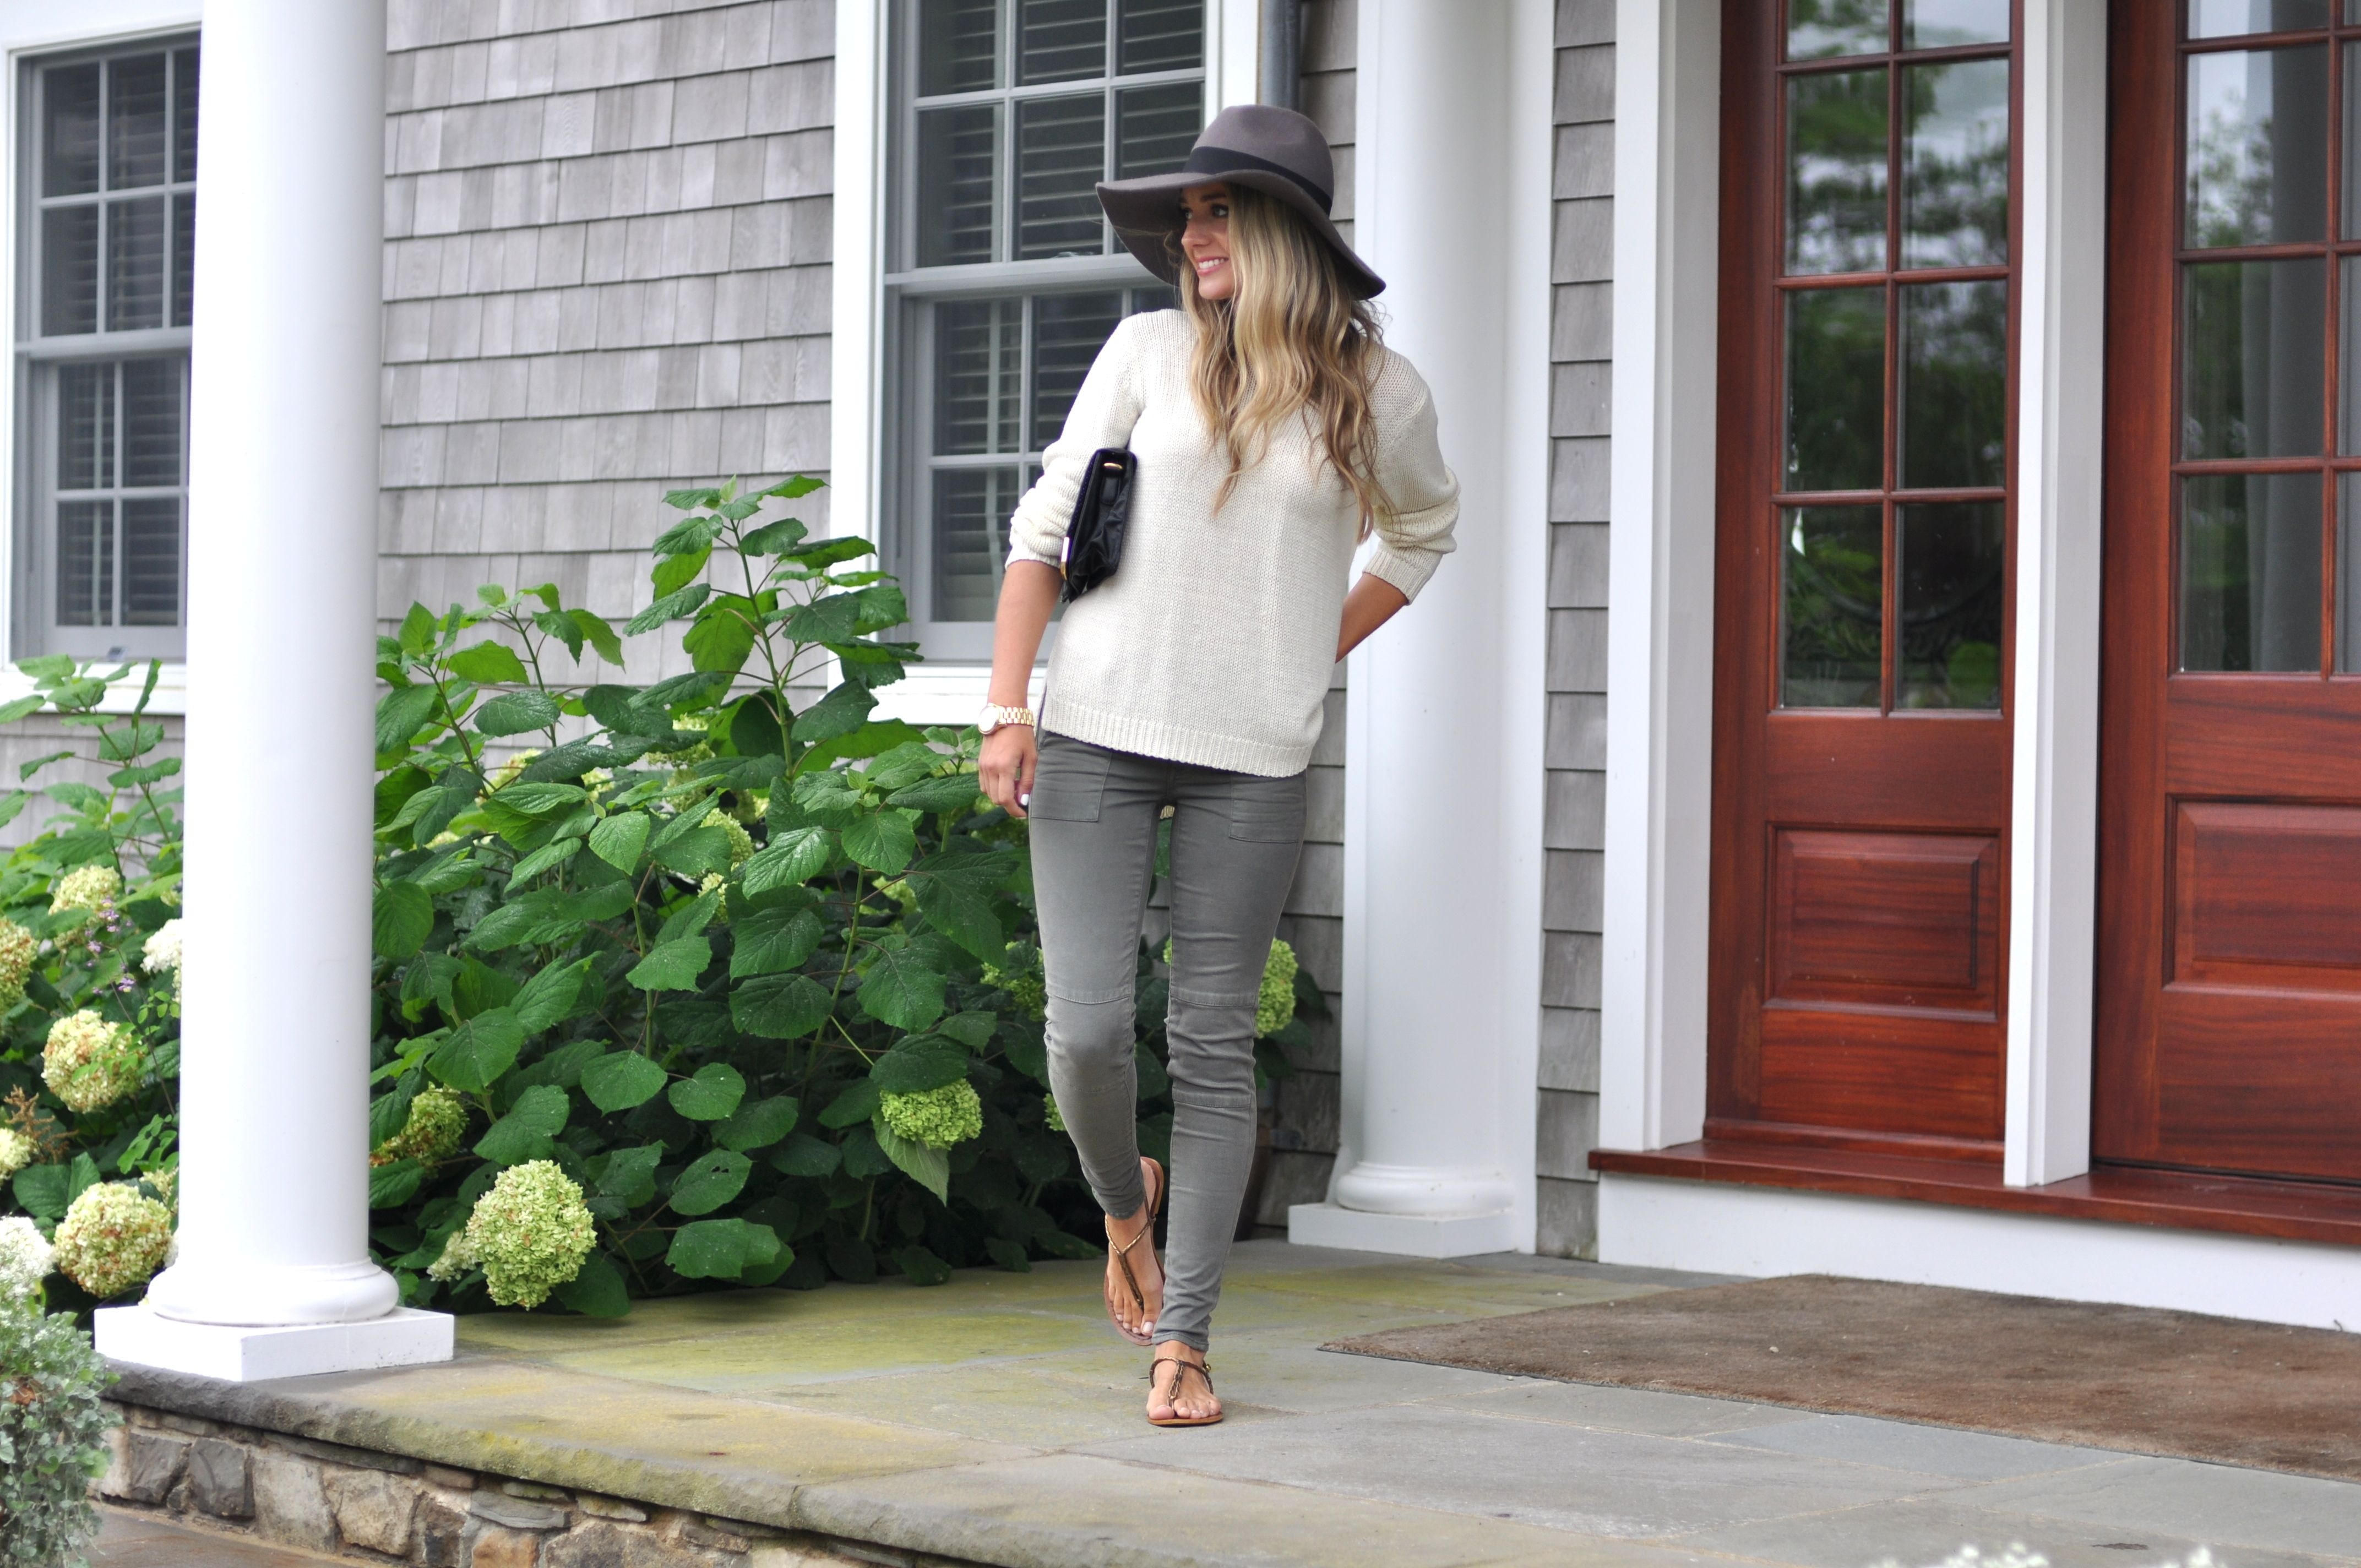 Olive Skinny Pants and Cozy Knit | www.missbethanykate.com